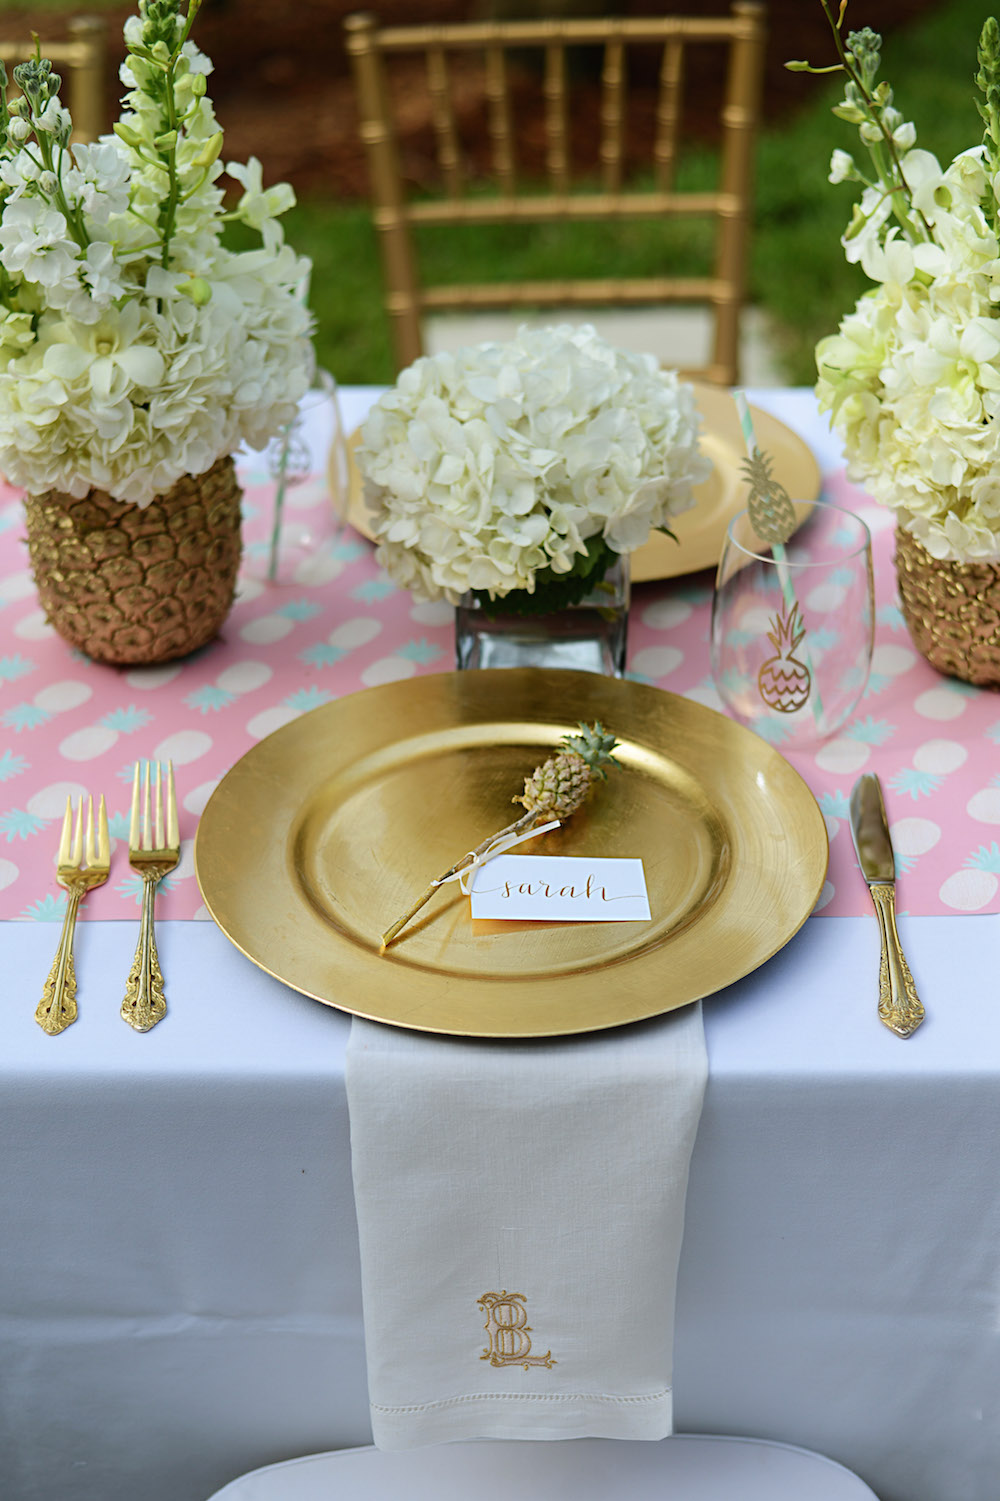 pink_table_pineapple_flowers_gold_plate